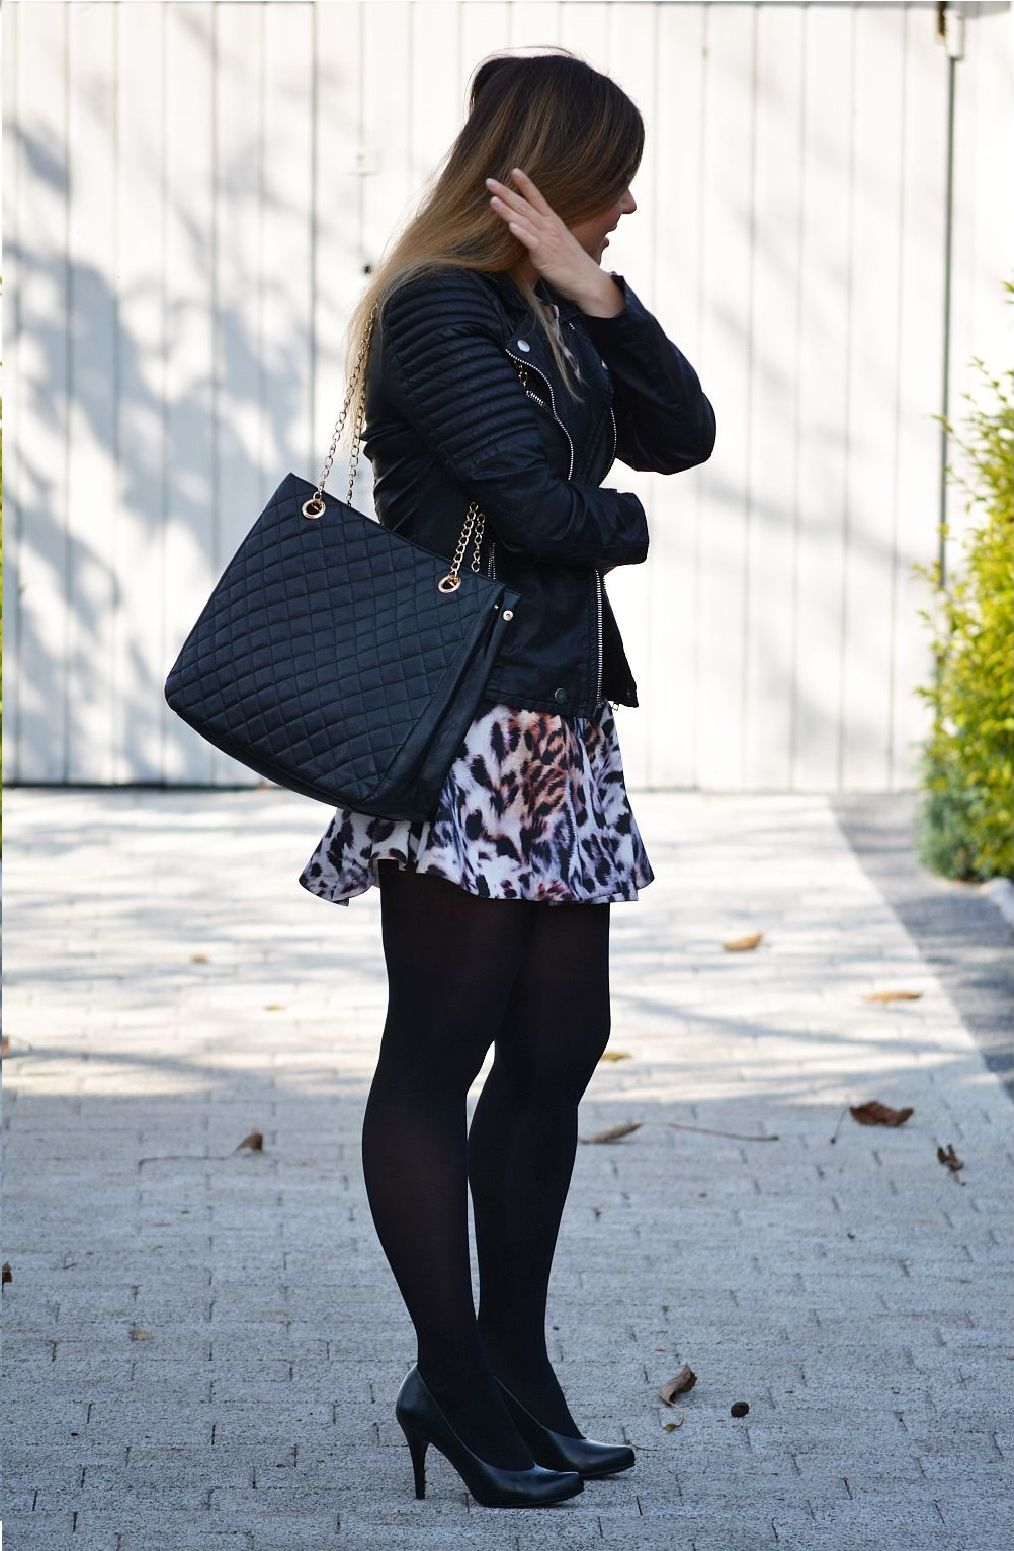 Leather jacket Stradivarius, Grouper dress, black tights, high-heels Deichmann, leather bag Stradivarius